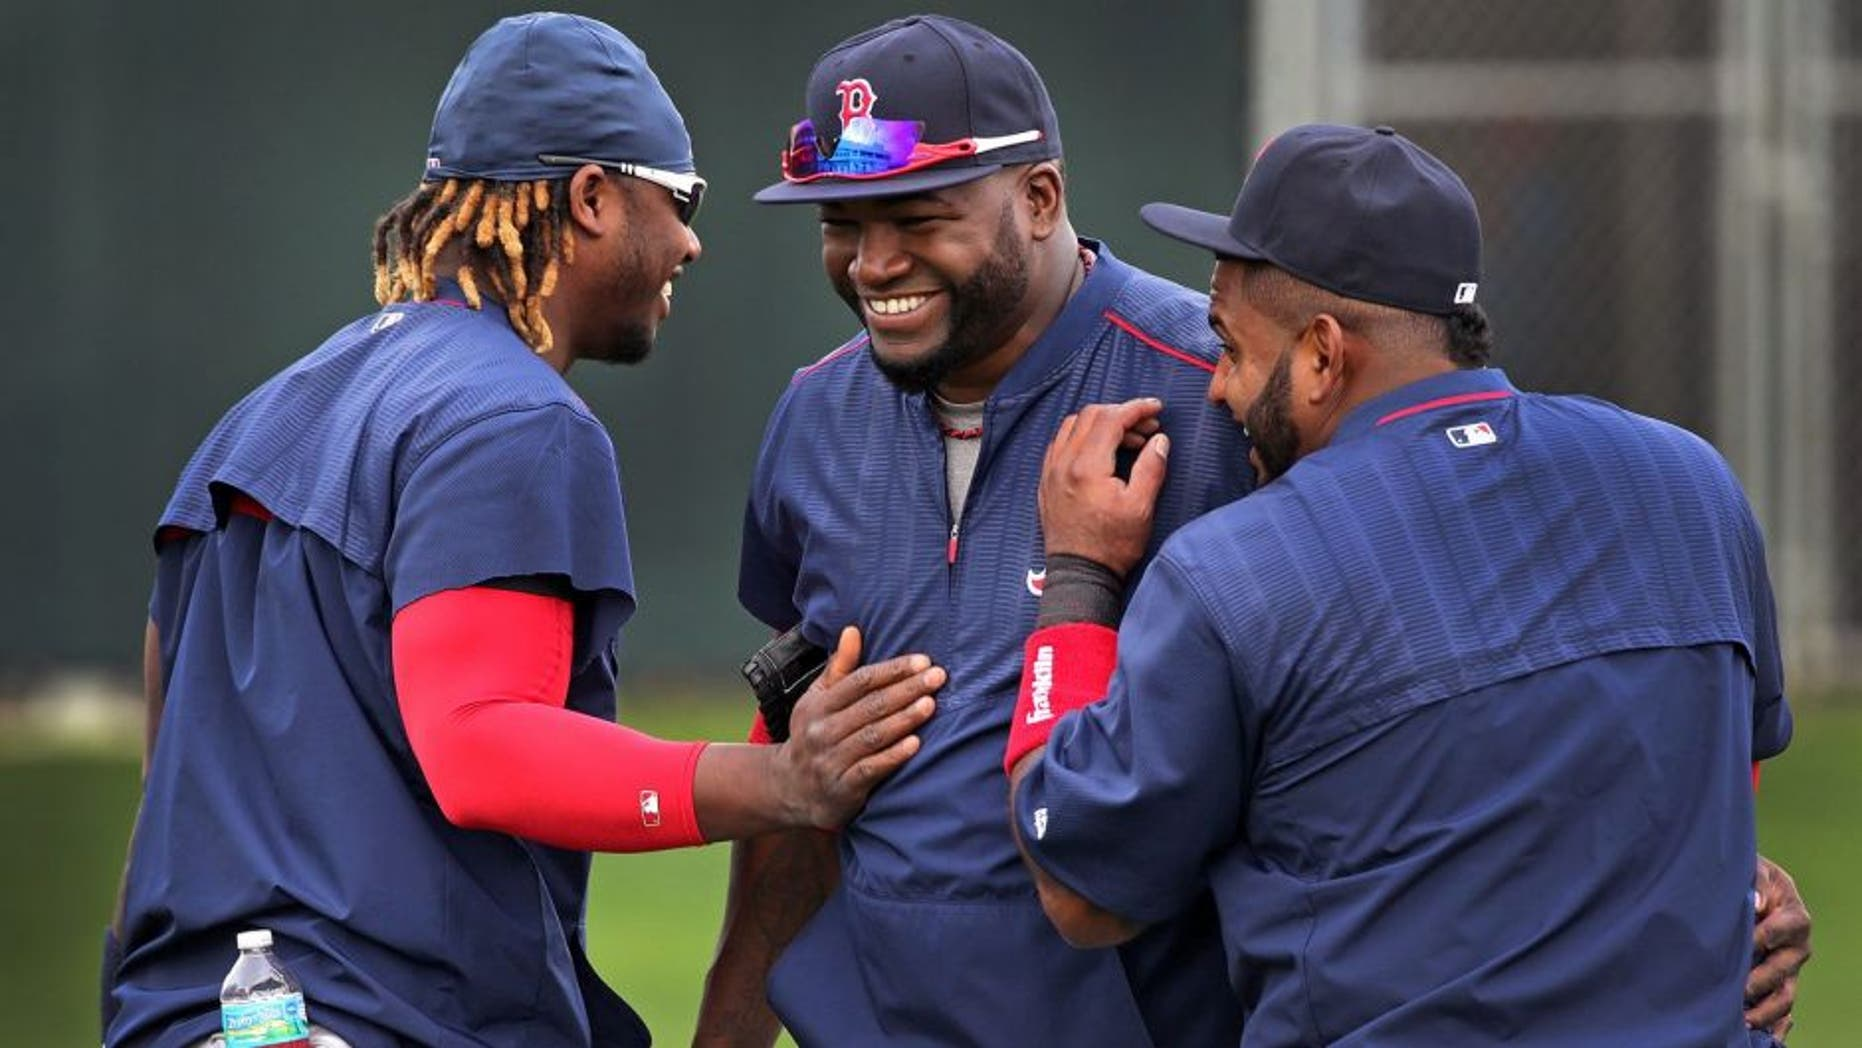 FORT MYERS, FL - FEBRUARY 27: The three amigos Boston Red Sox outfielder Hanley Ramirez, Red Sox designated hitter David Ortiz, and Red Sox third baseman Pablo Sandoval share a laugh during the morning stretching. (Photo by Barry Chin/The Boston Globe via Getty Images)